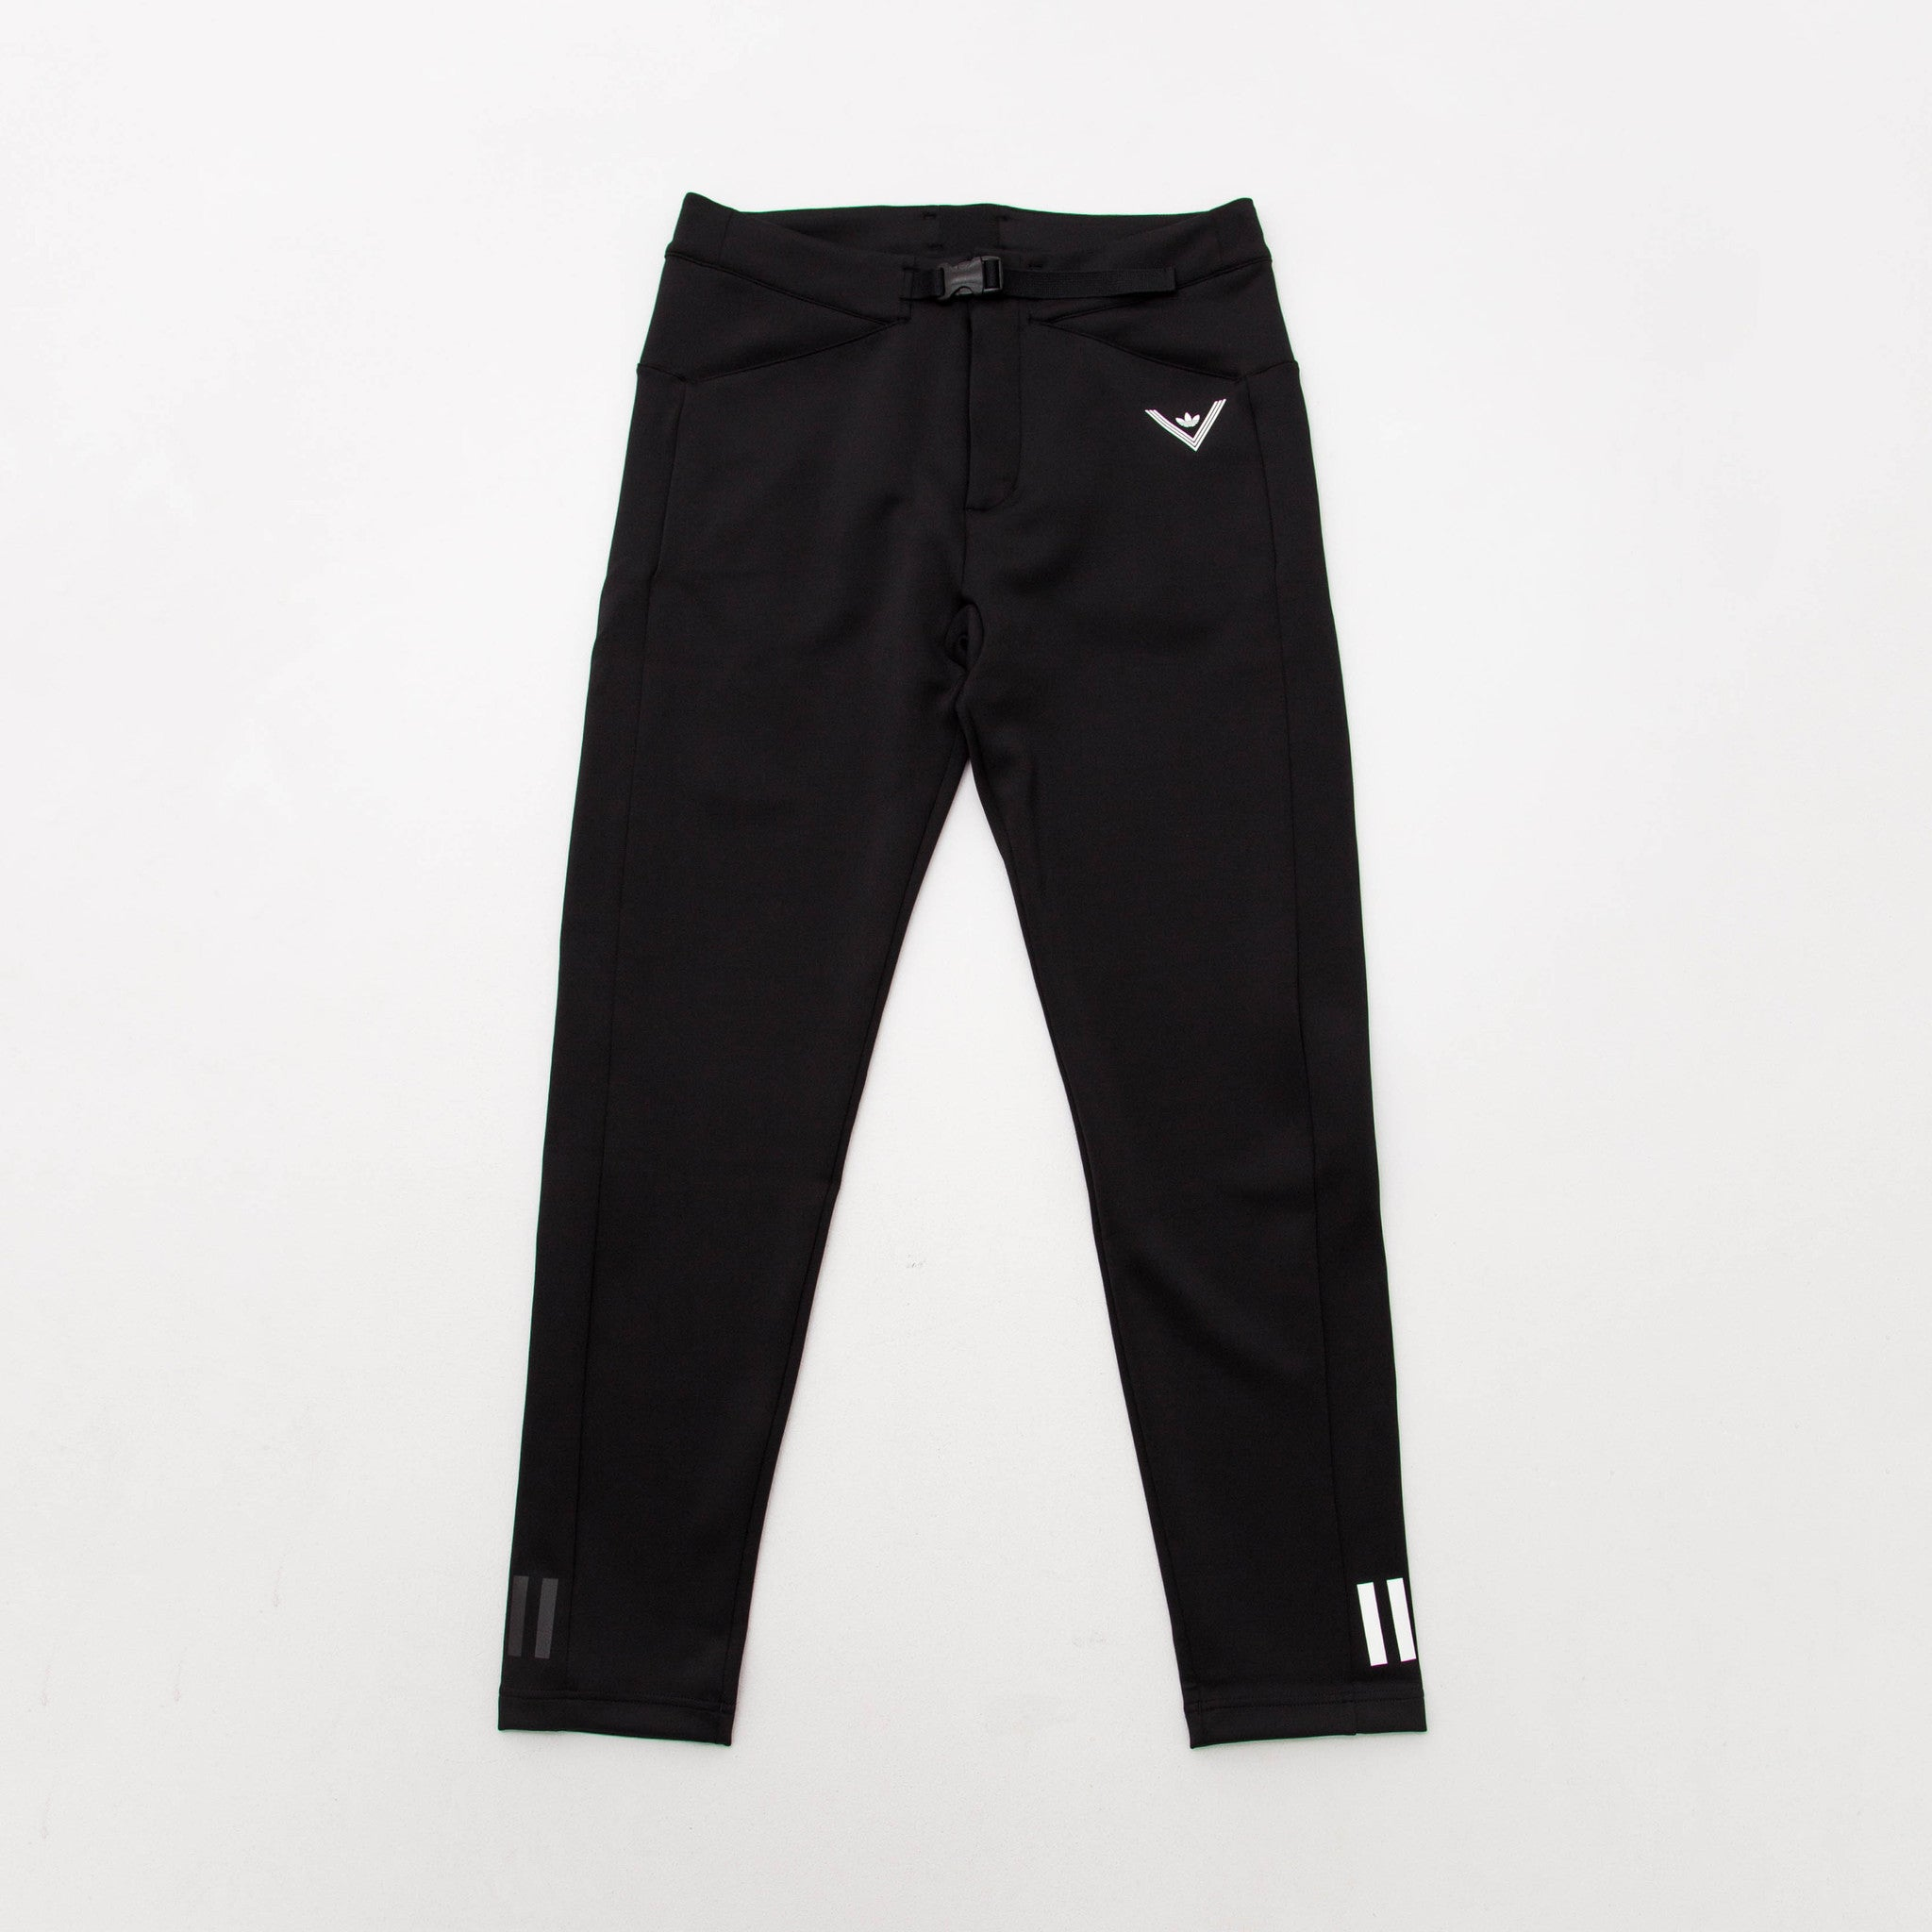 adidas WM Track Pants - Black - BQ0955